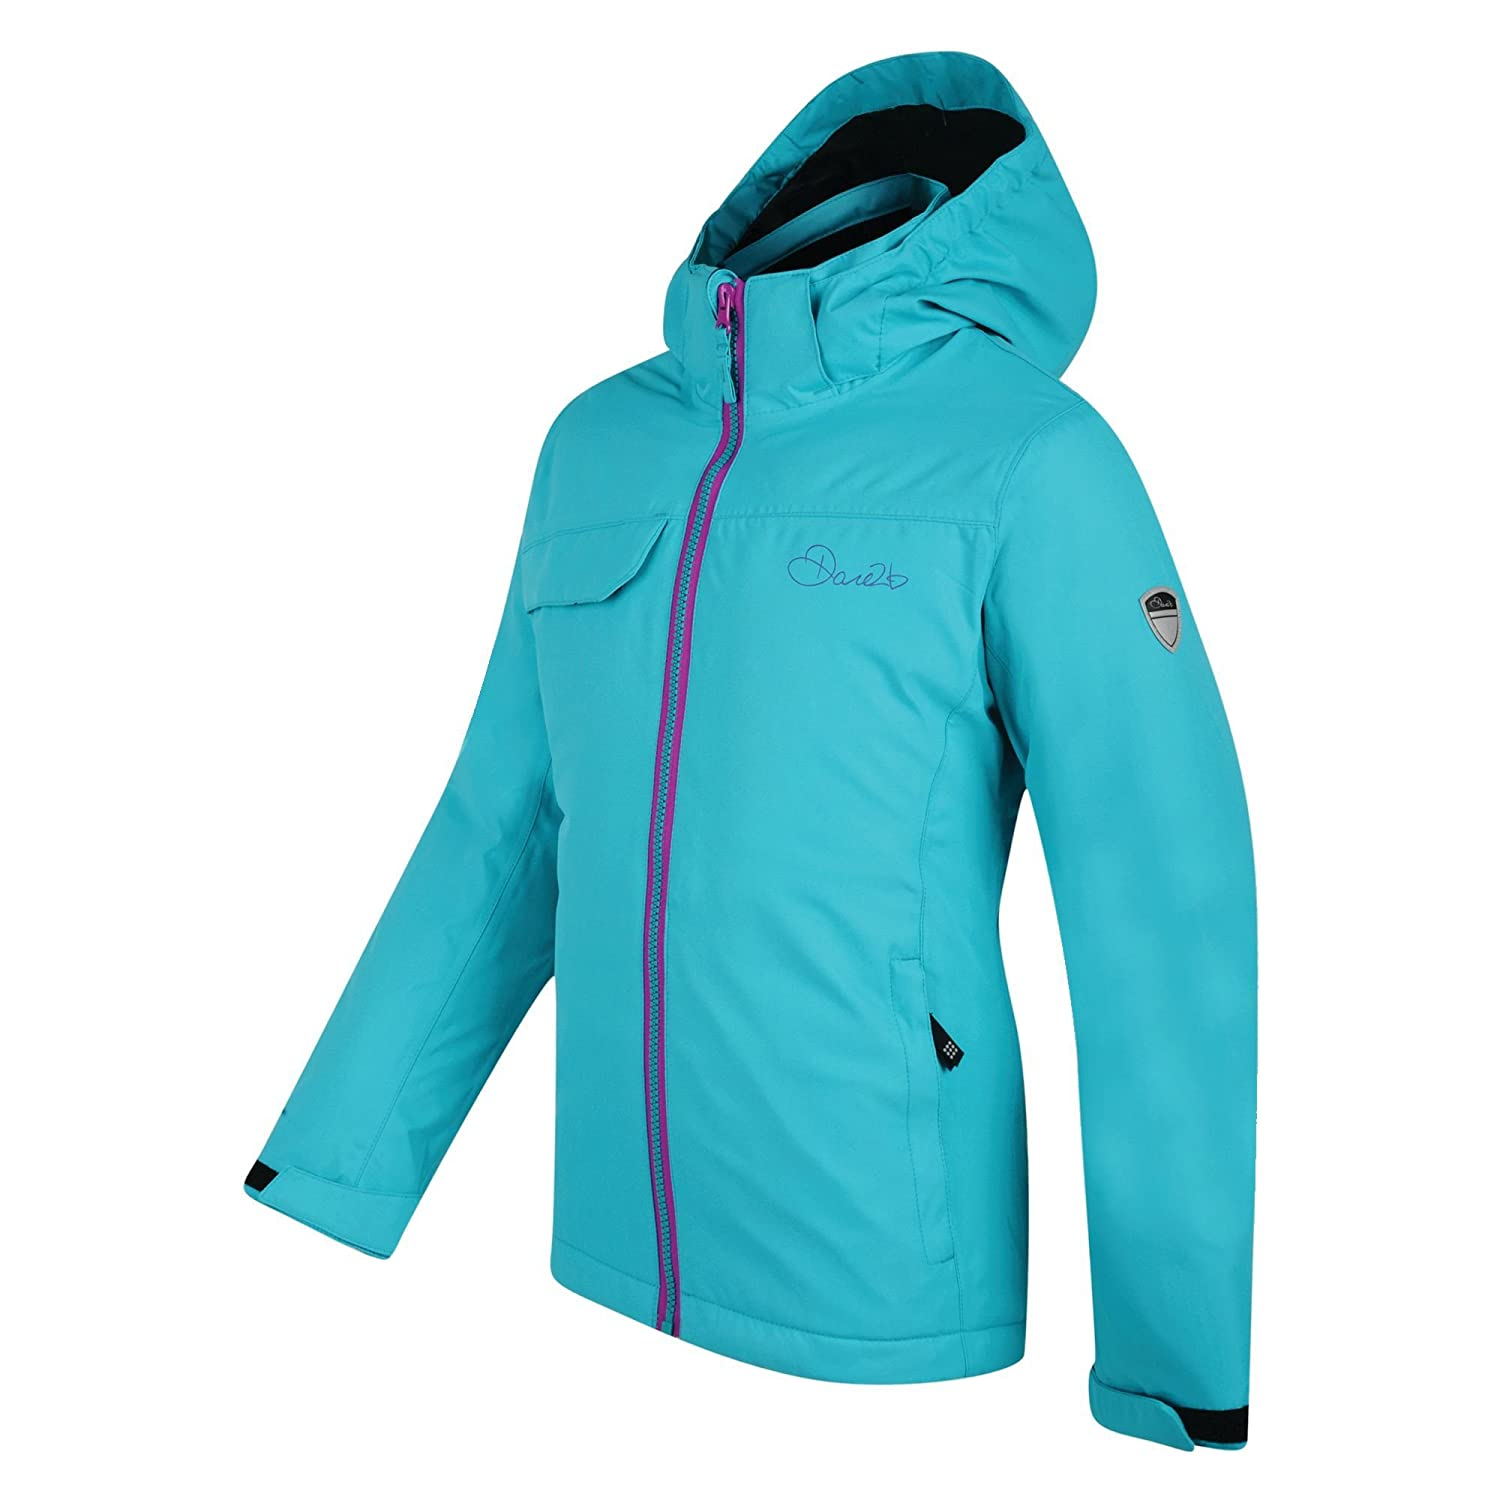 Amazon.com : Dare2b Ruminate Junior Waterproof Ski Jacket ...